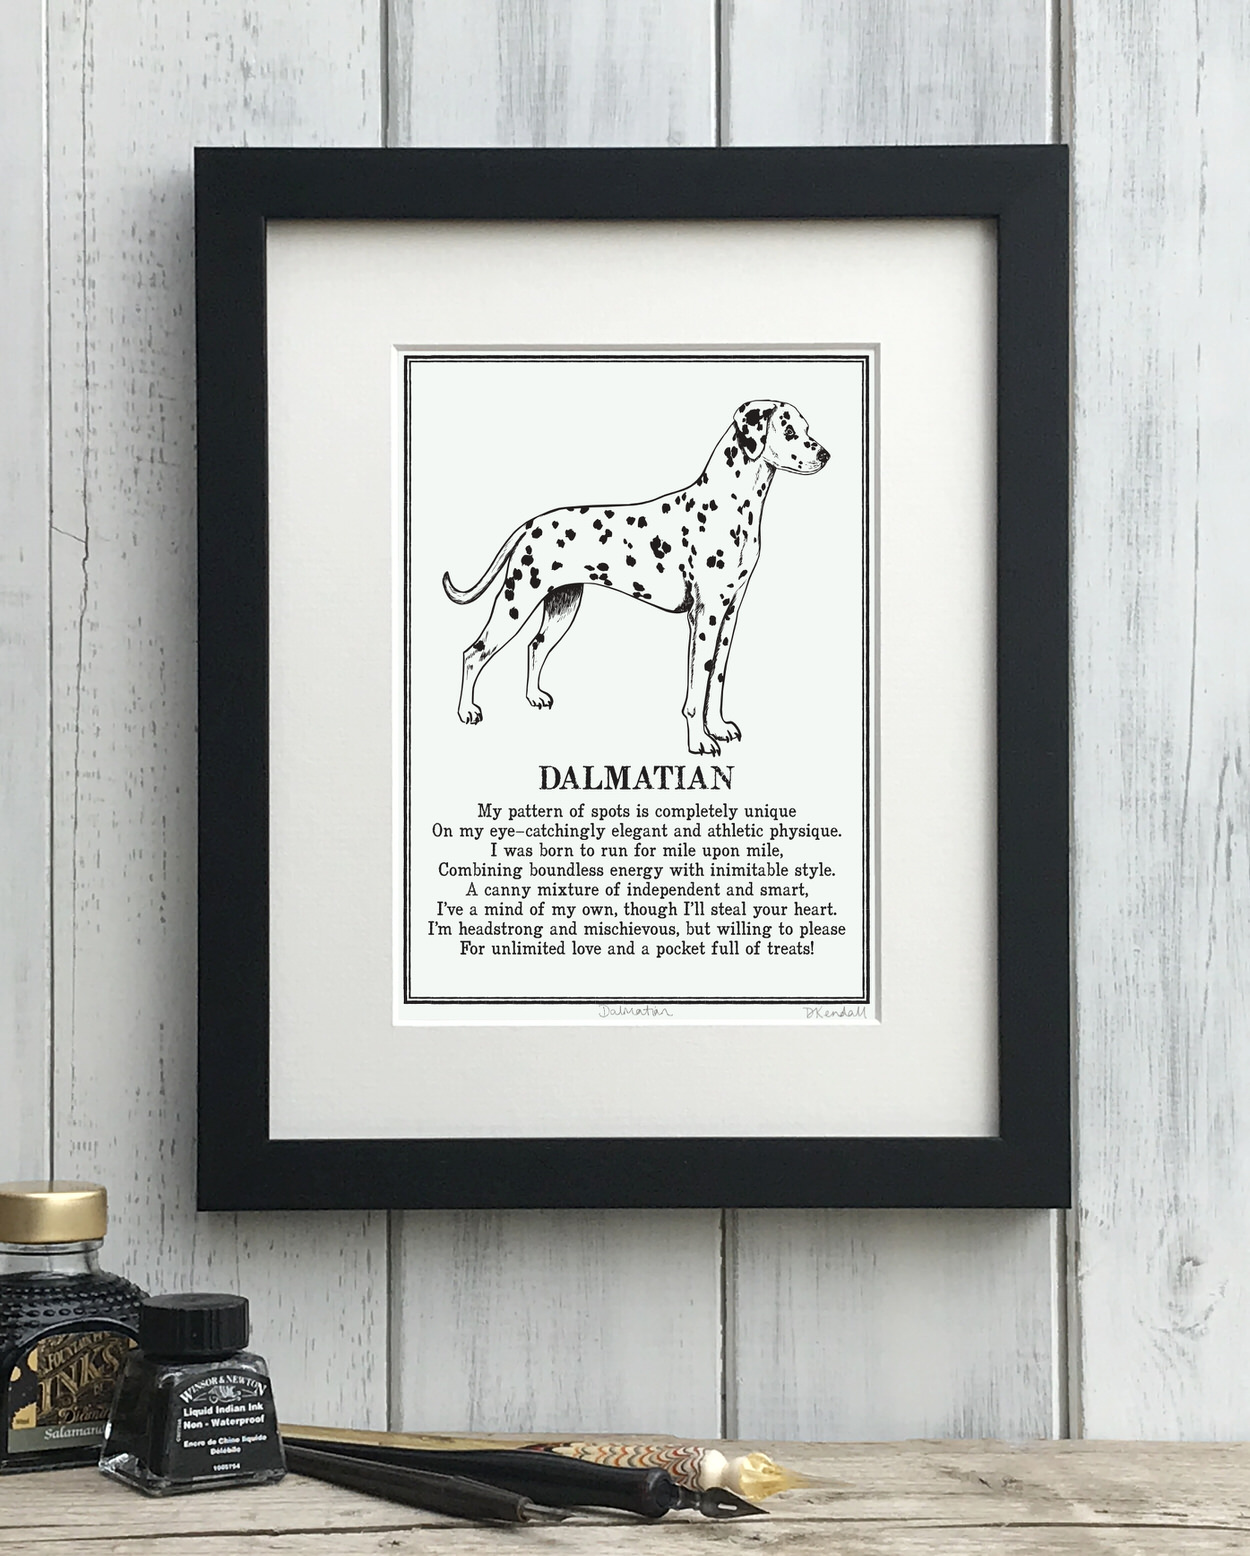 Dalmatian print illustrated poem by The Enlightened Hound